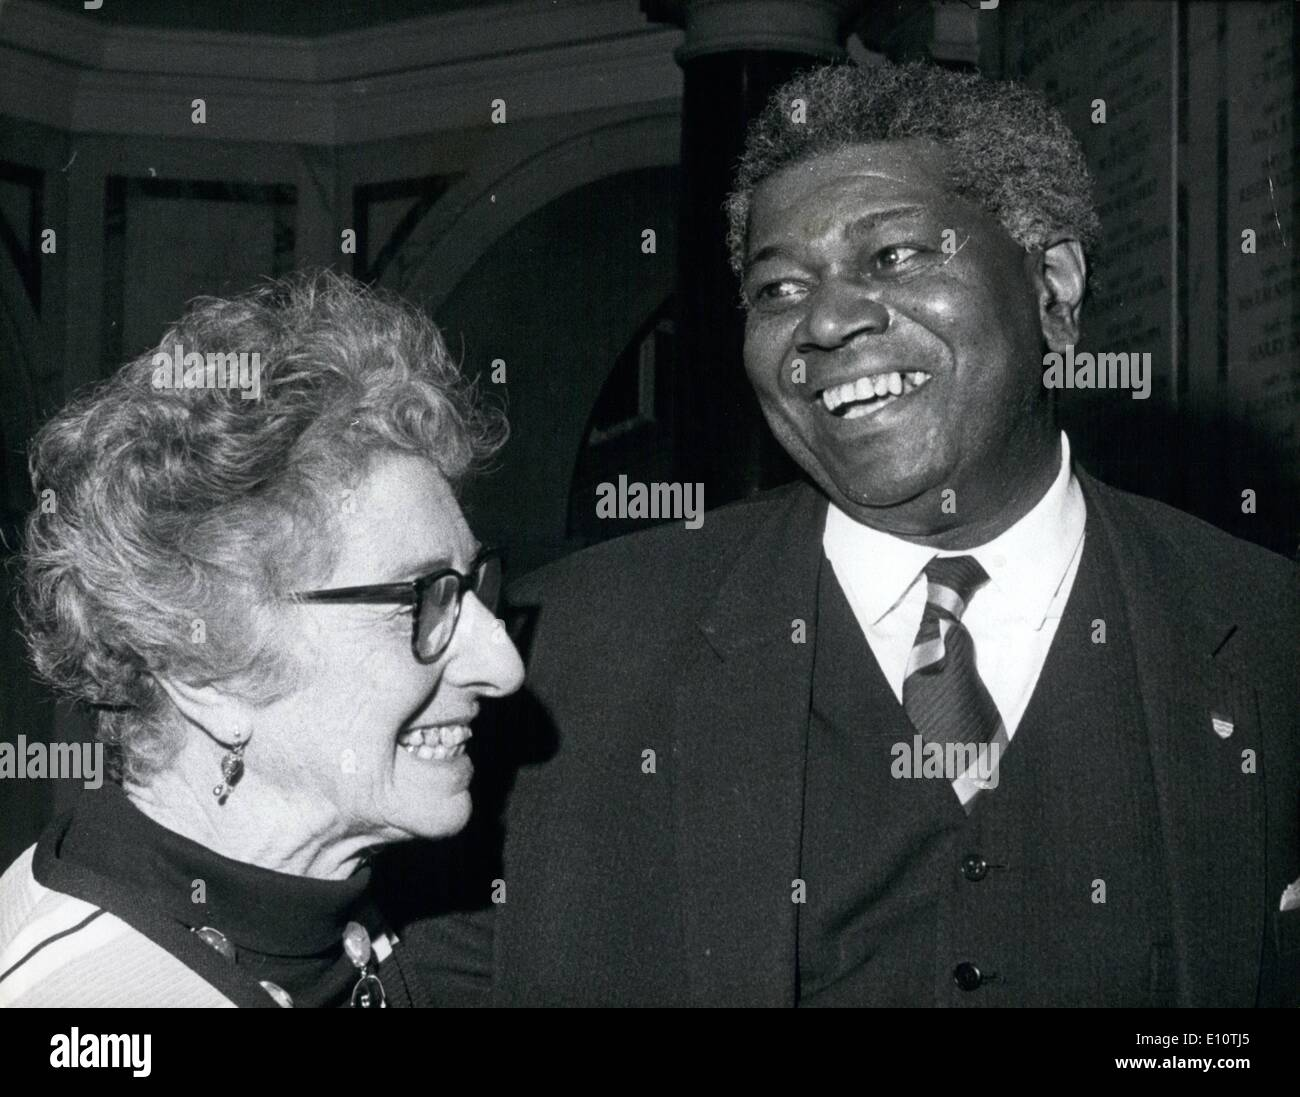 Feb. 02, 1974 - First Coloured member of GLC Nominated as chairman. Dr .David Pitt, 60, first coloured member of the Greater London Council , pictured at County hall yesterday with a colleague , Councillor Mrs. Rose Hagger , after his nomination as chairman of the Labour- controlled council, His selection is almost certain to be approved and he takes office in May. - Stock Image